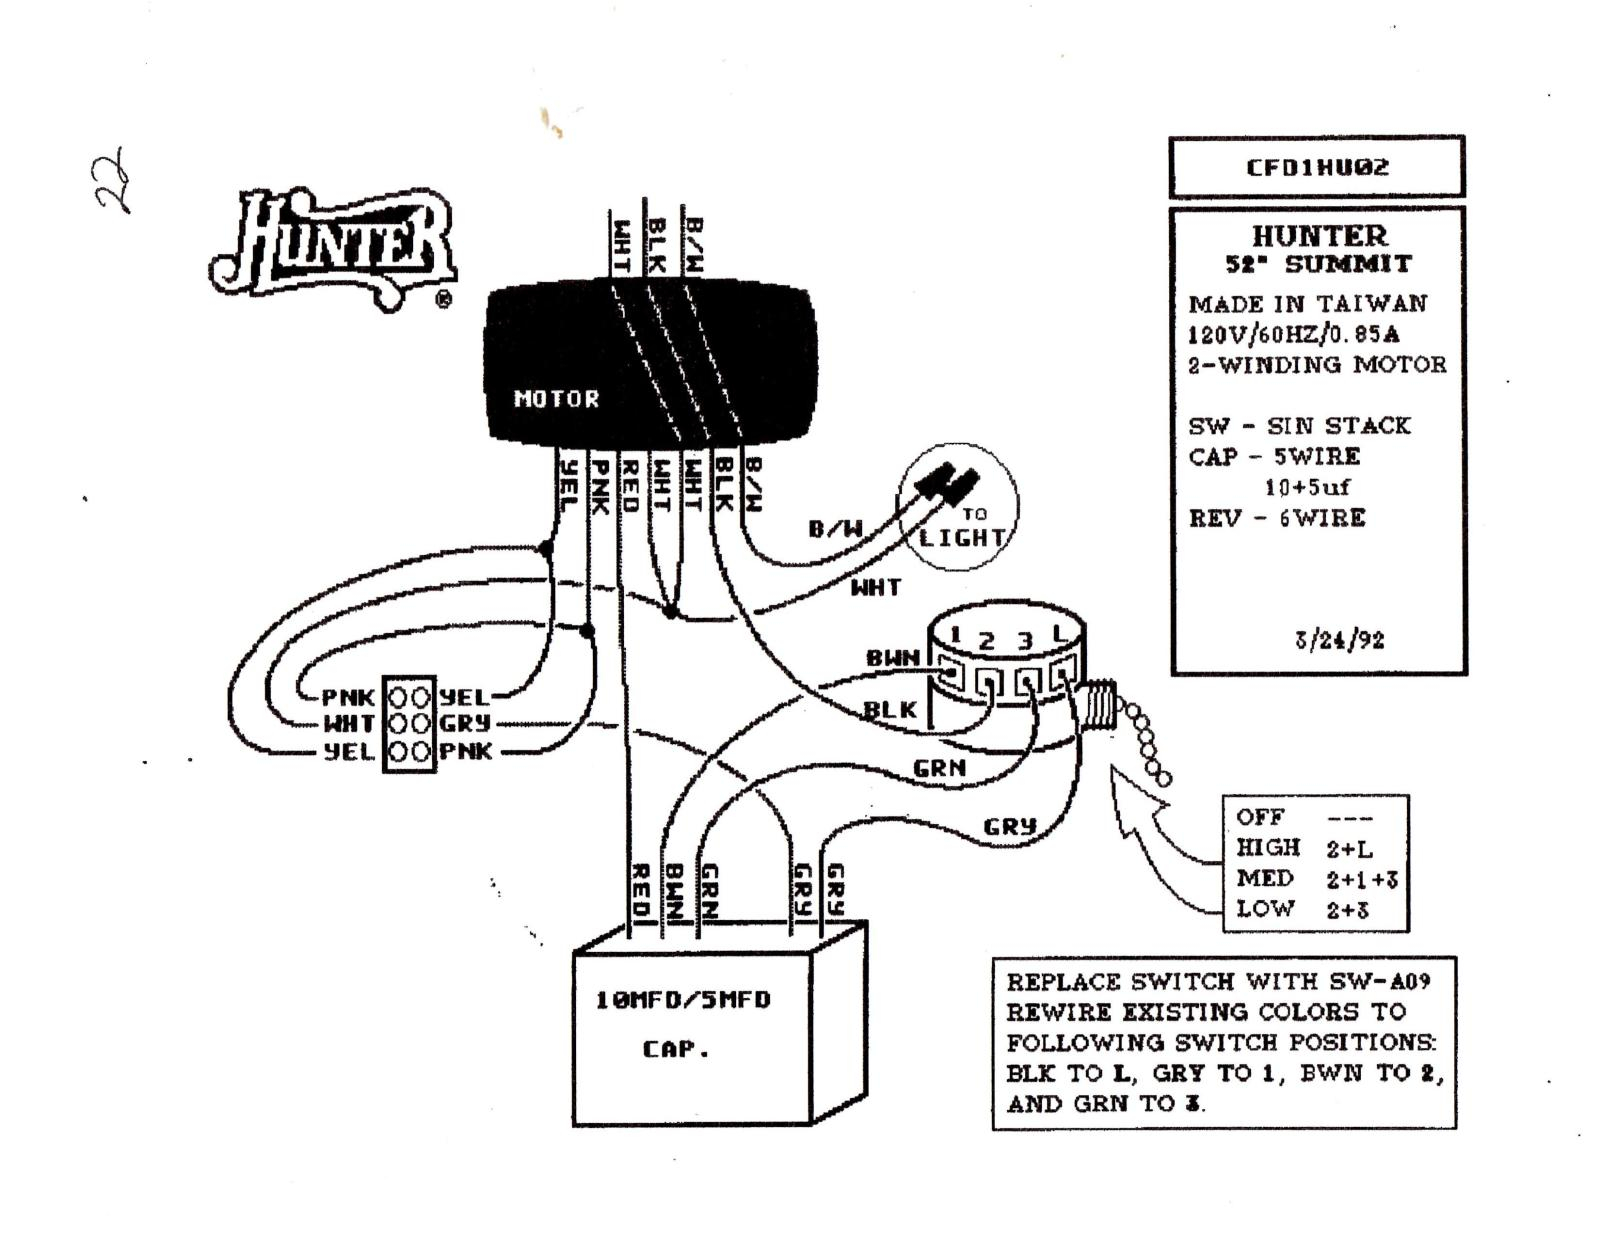 hampton fan switch wiring diagram